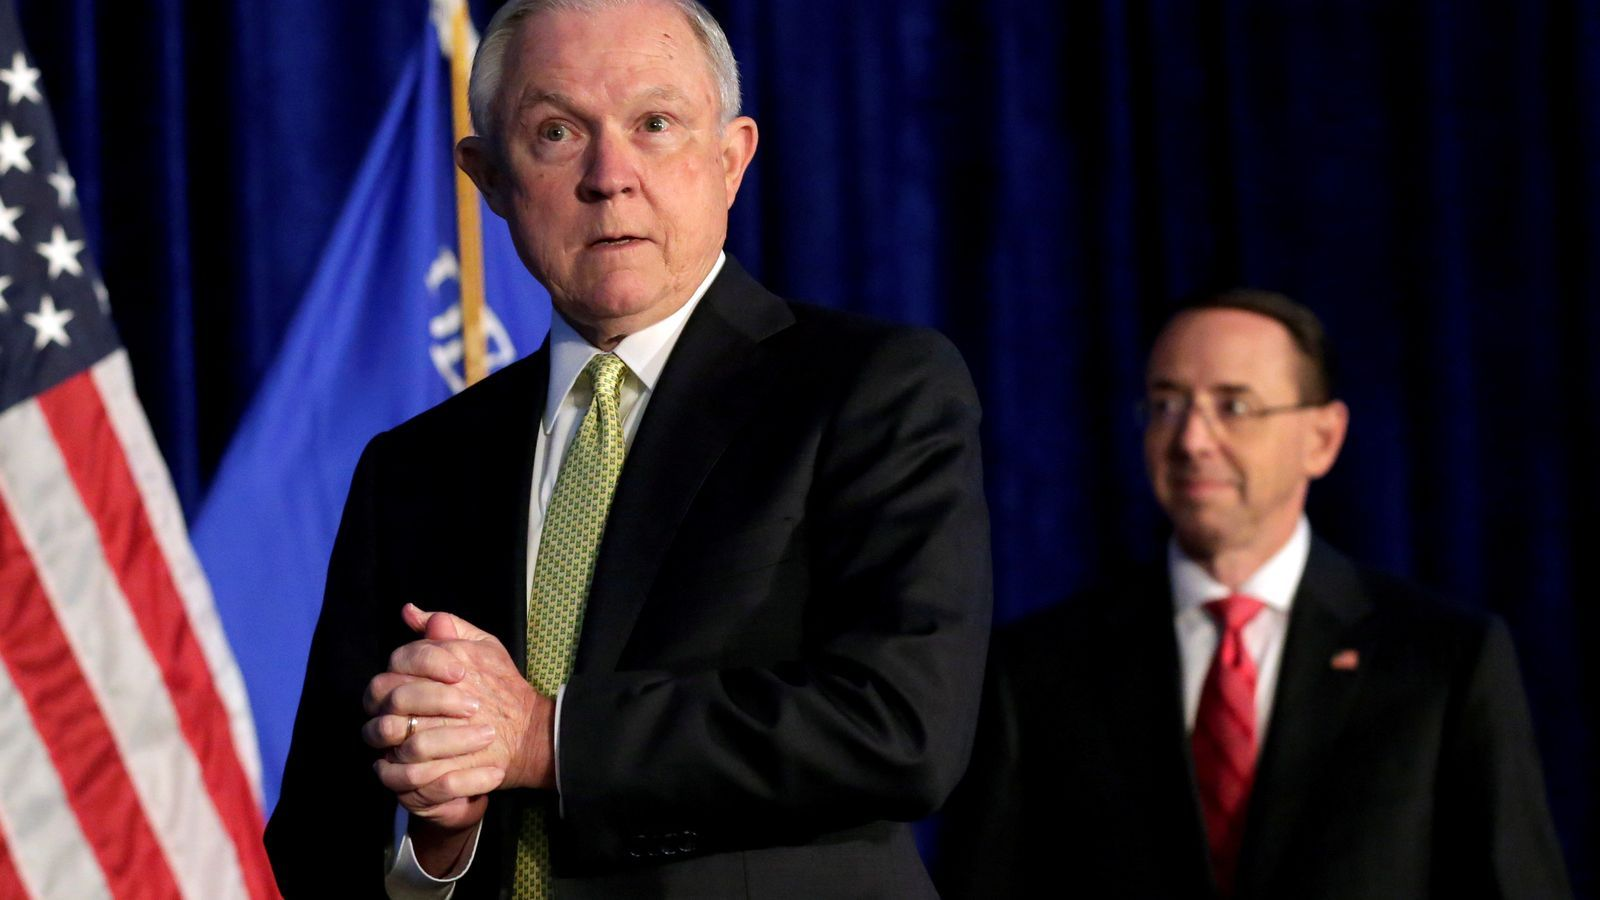 Trump destitueix el fiscal general dels EUA, Jeff Sessions